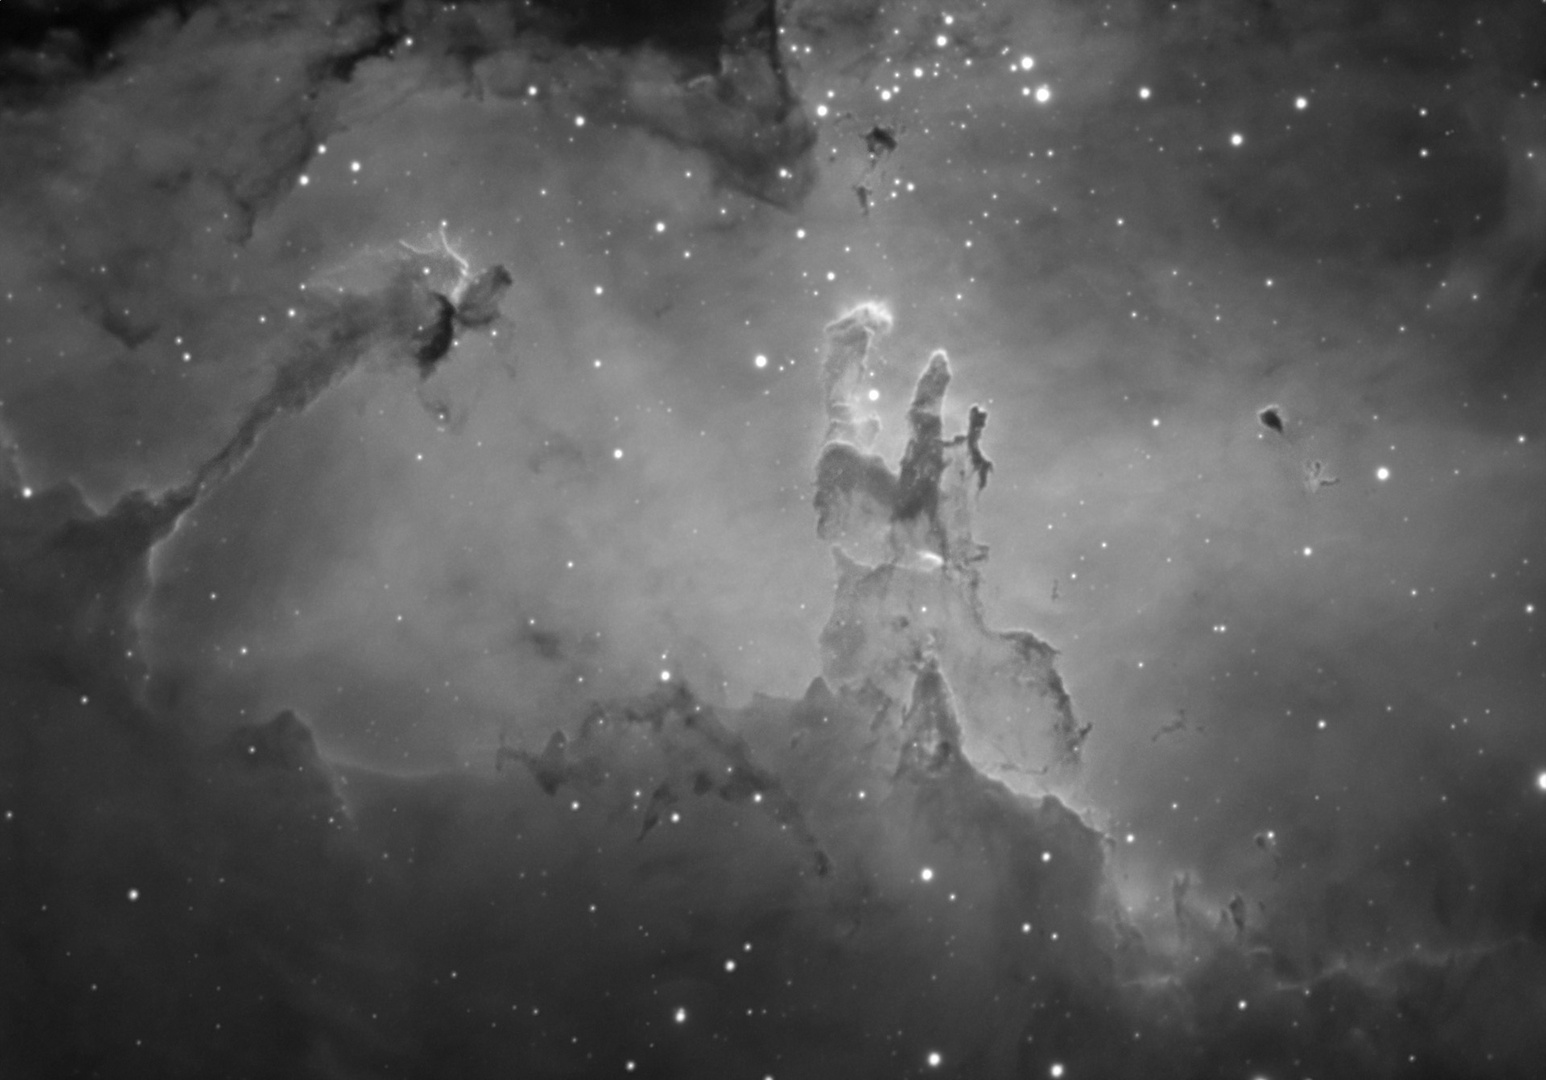 High resolution image of M16 Eagle nebula center